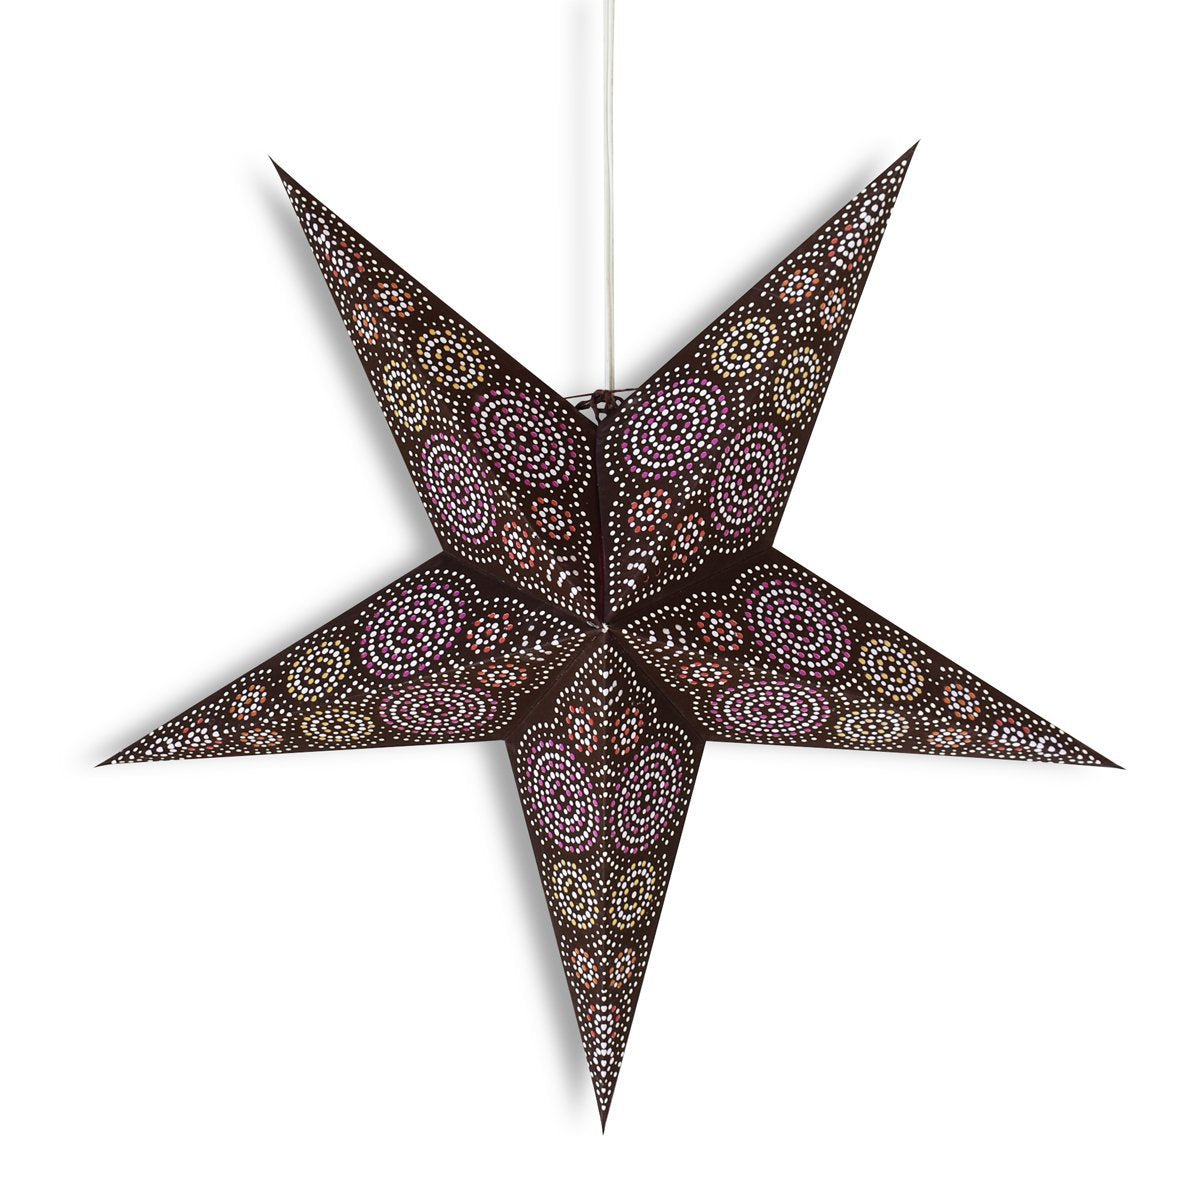 "BLOWOUT 24"" Brown / Purple Aussie Paper Star Lantern, Hanging Wedding & Party Decoration - PaperLanternStore.com - Paper Lanterns, Decor, Party Lights & More"